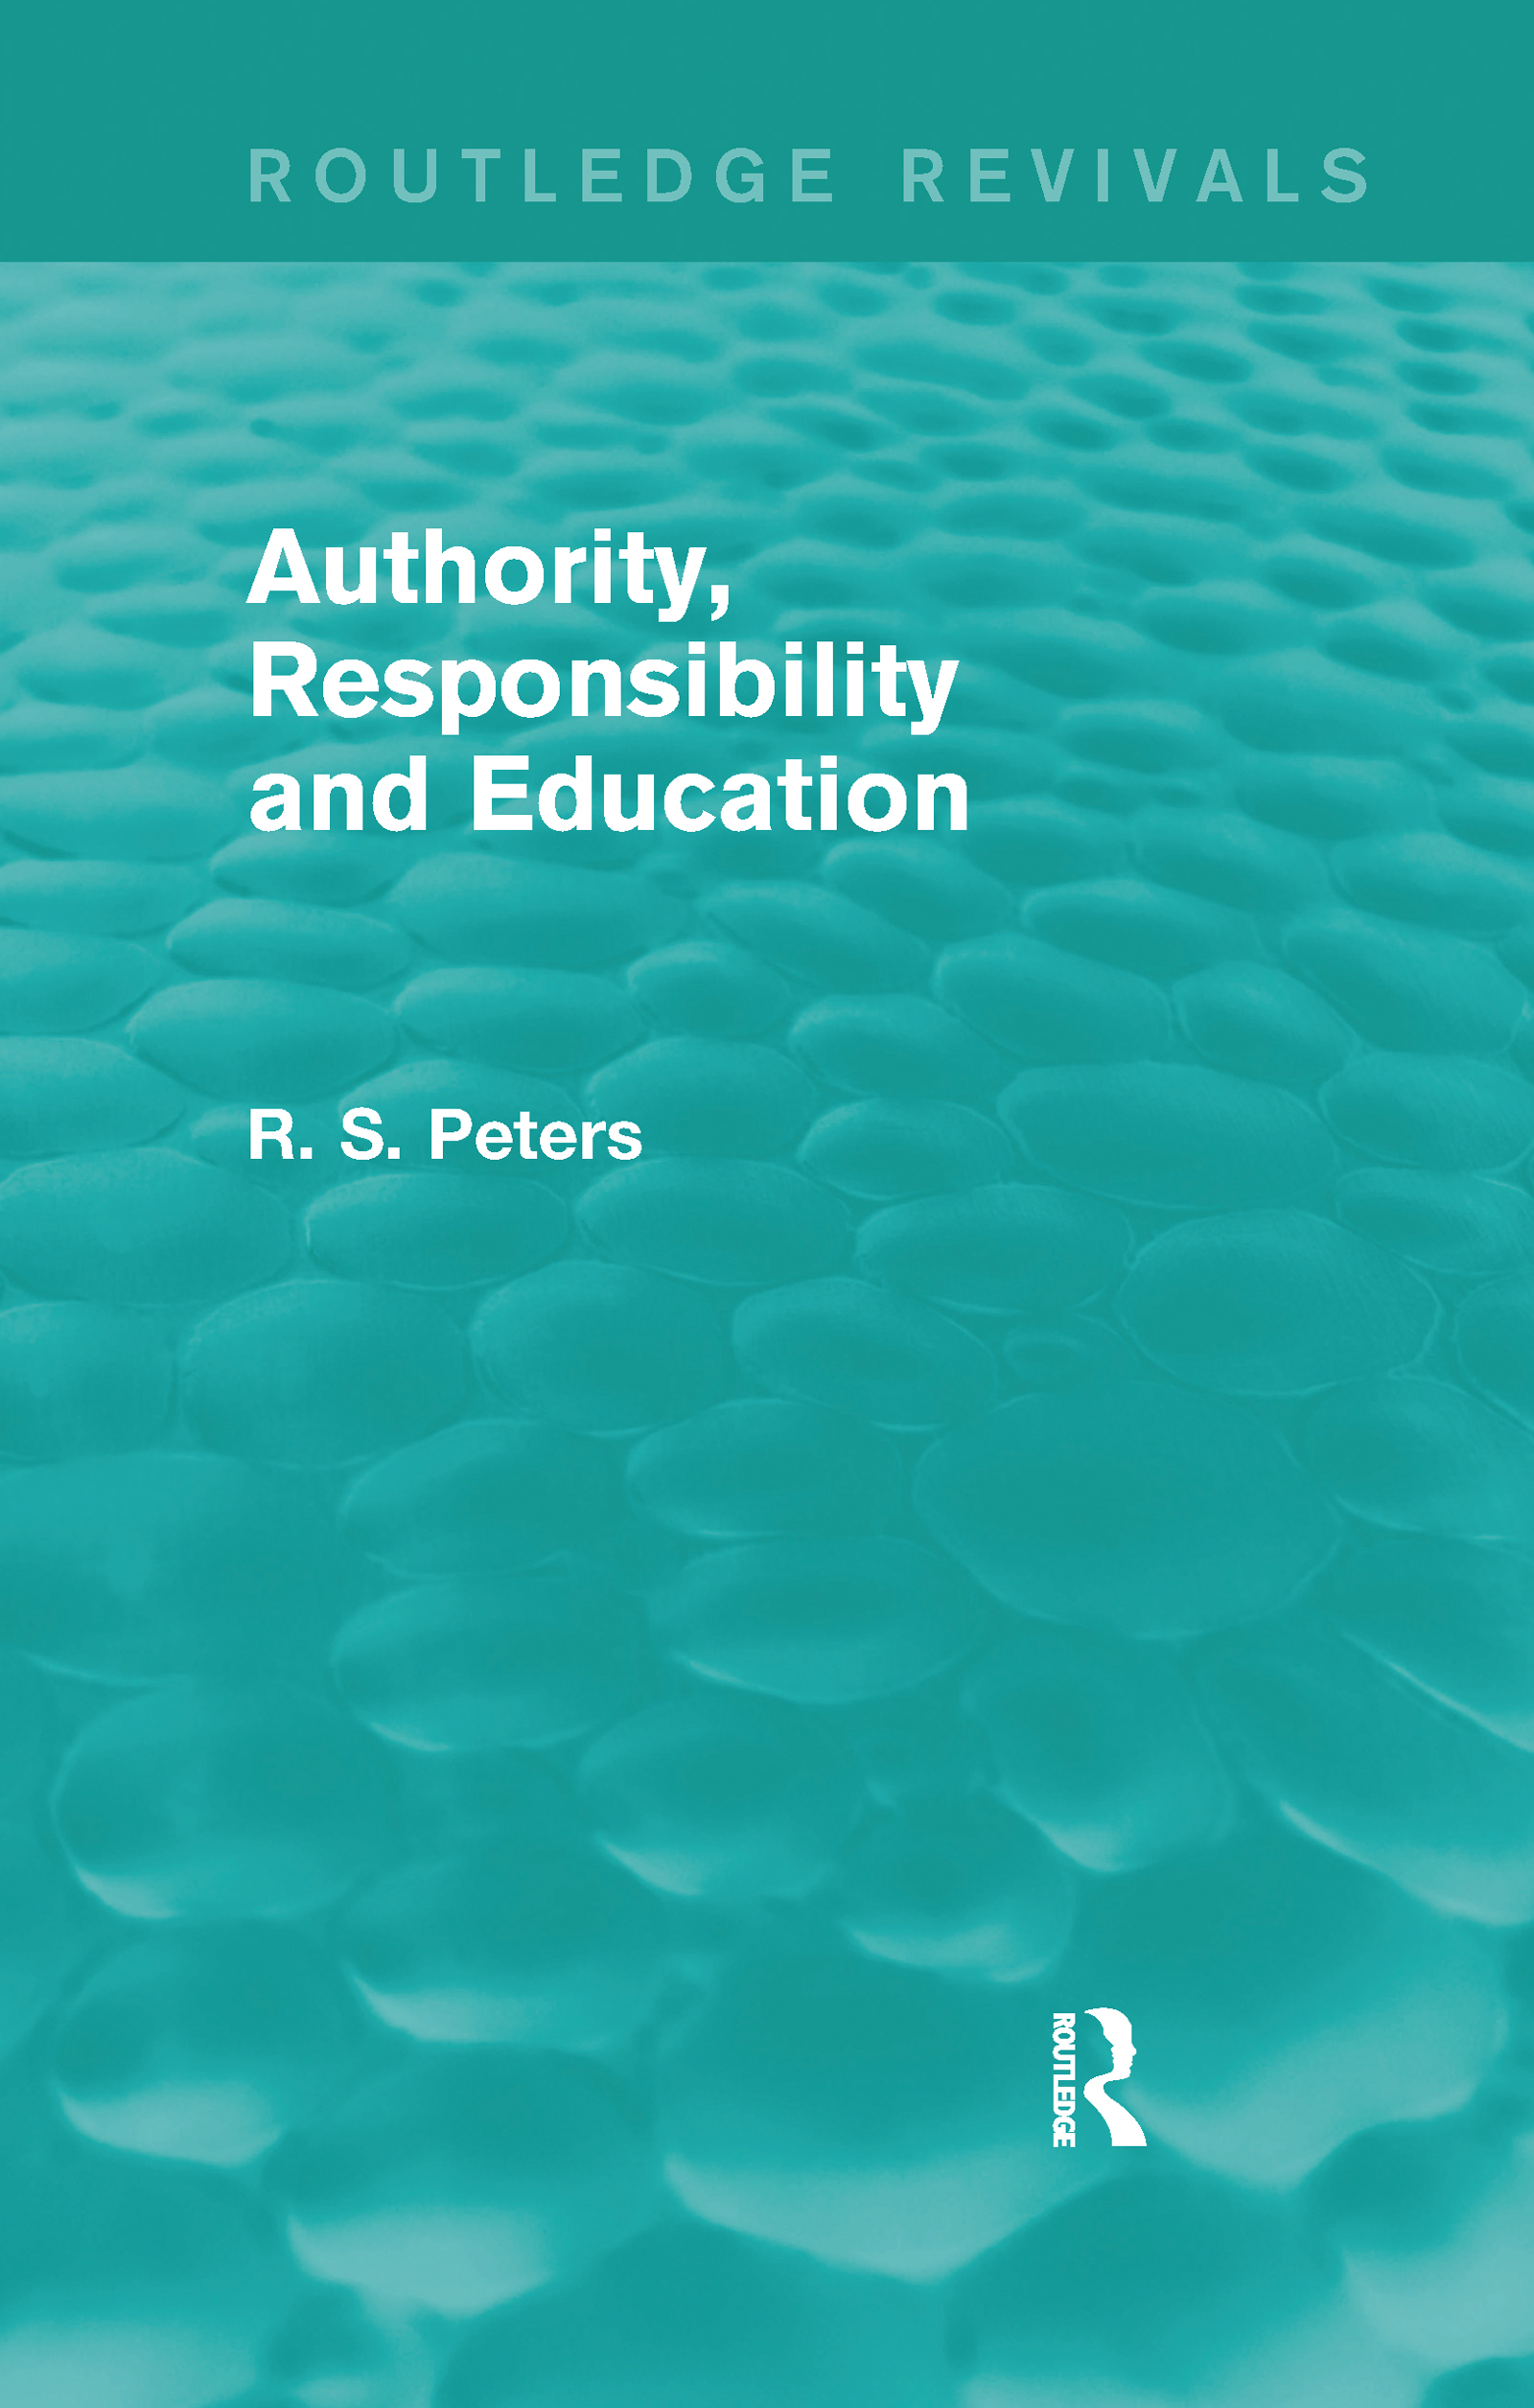 Authority, Responsibility and Education